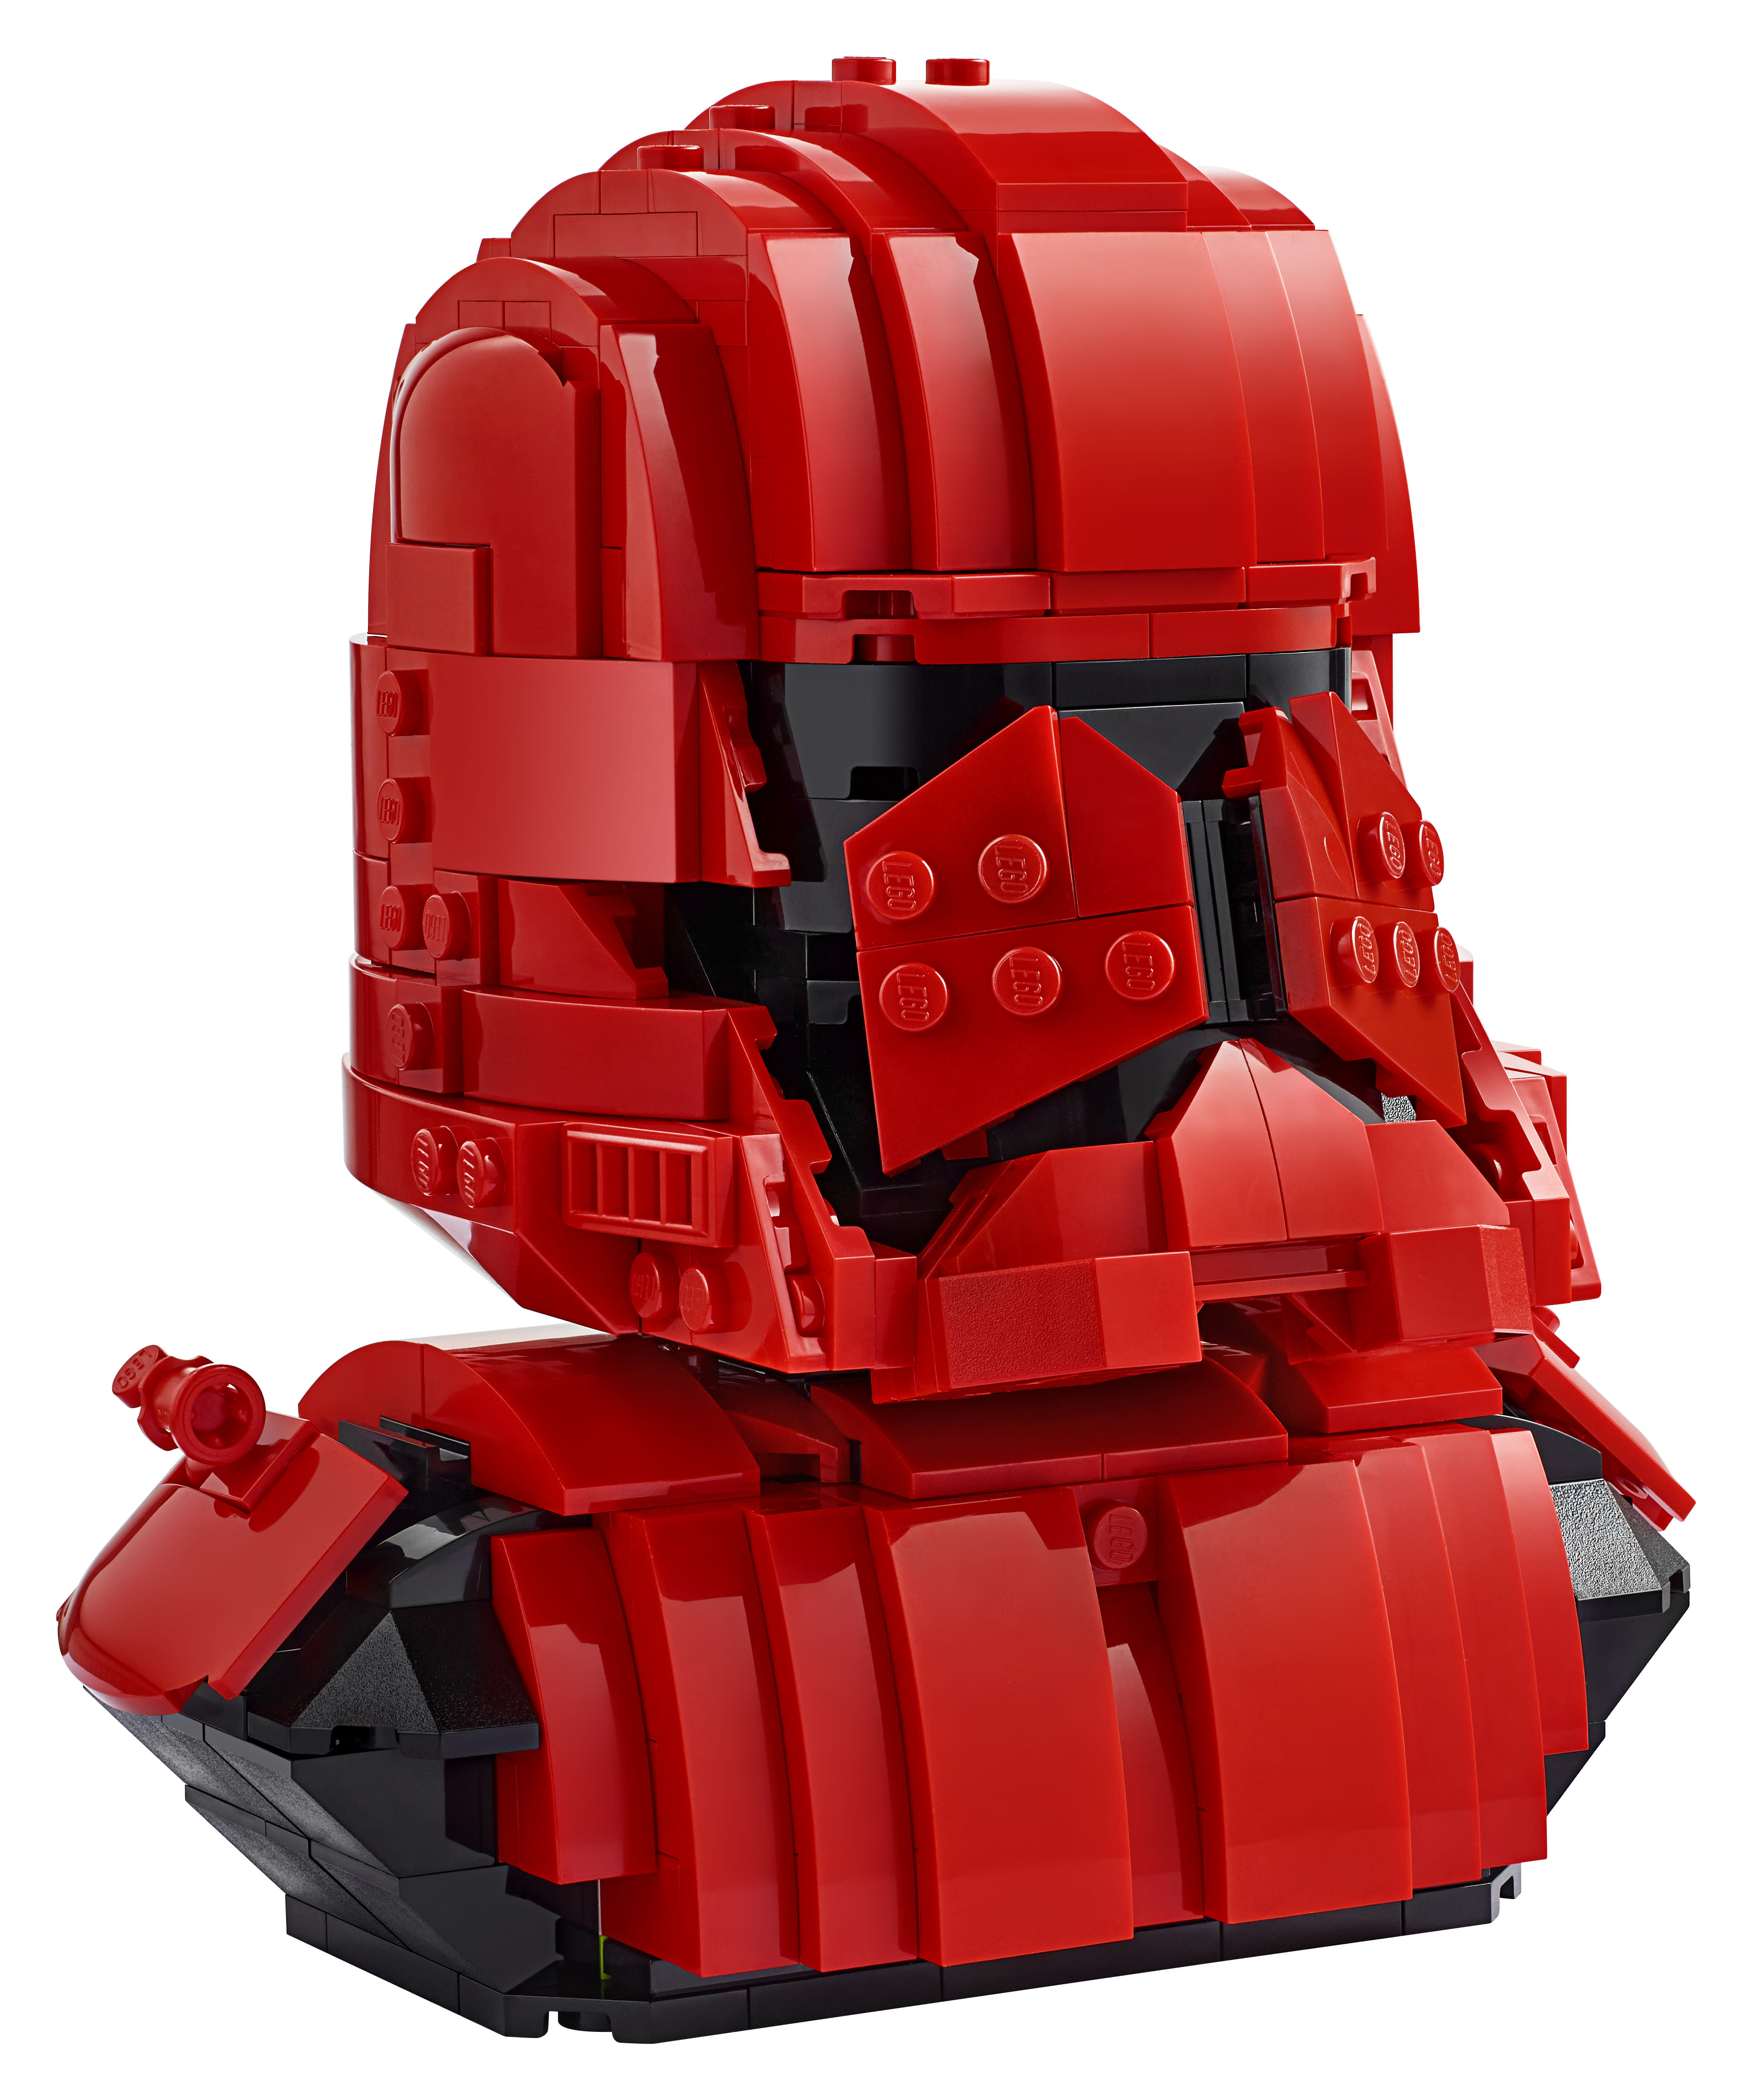 Lego Introduces A Super New Star Wars Trooper Here S Your Exclusive Sneak Peek